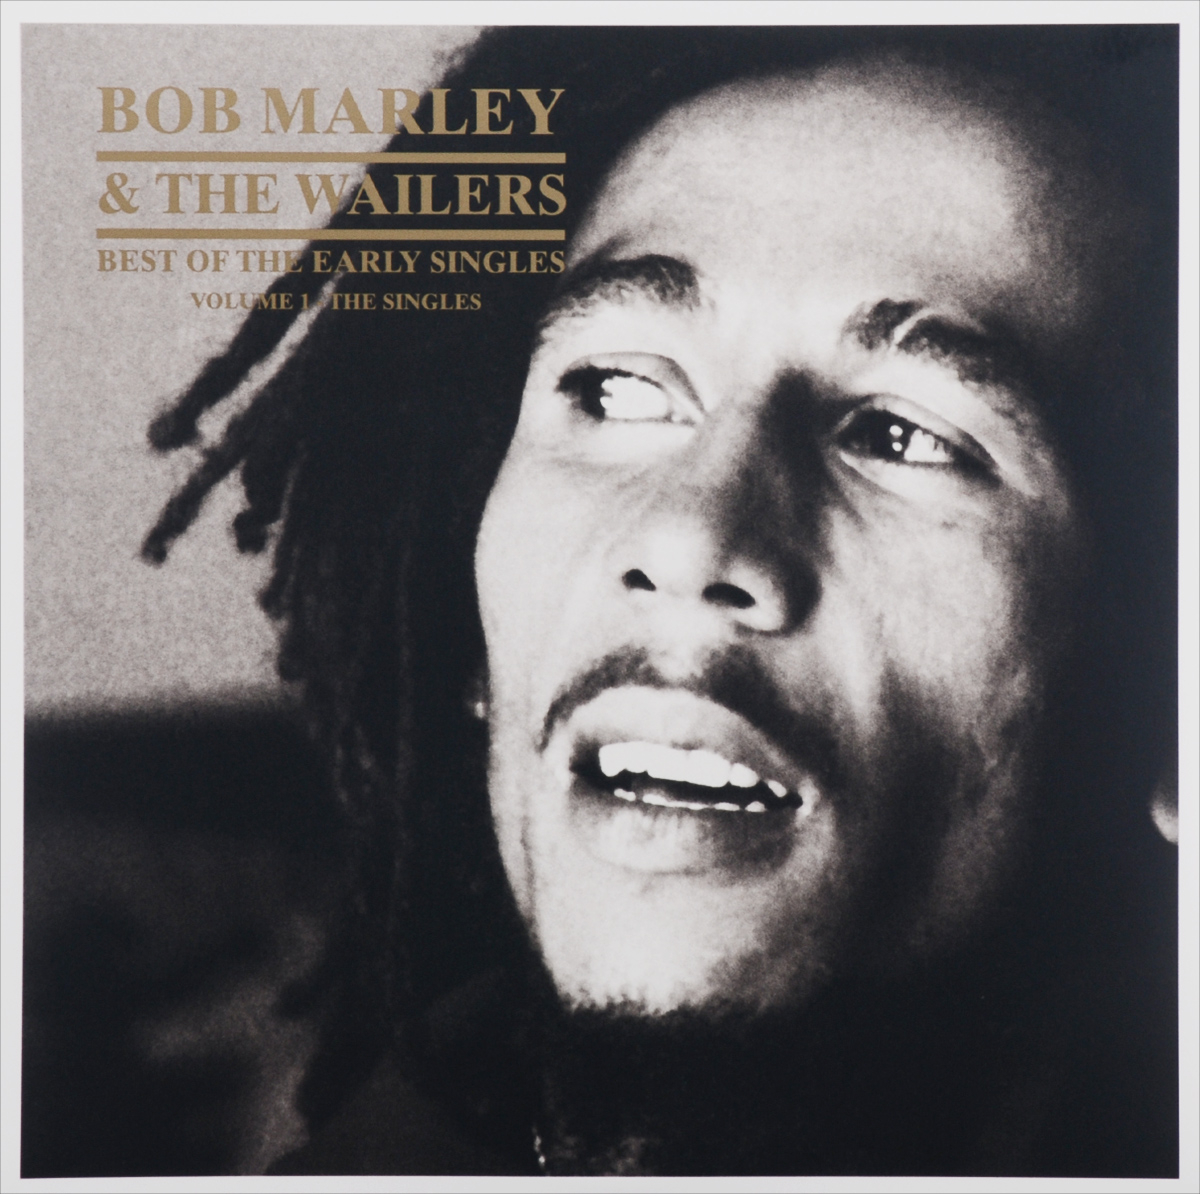 Боб Марли,The Wailers Bob Marley & The Wailers. Best Of The Early Singles. Volume 1 - The Singles (2 LP) jamaican rasta hat bob marley hat jameican hat tams fancy dress costumes crochet rasta beanies gorro bob marley cap rh 18